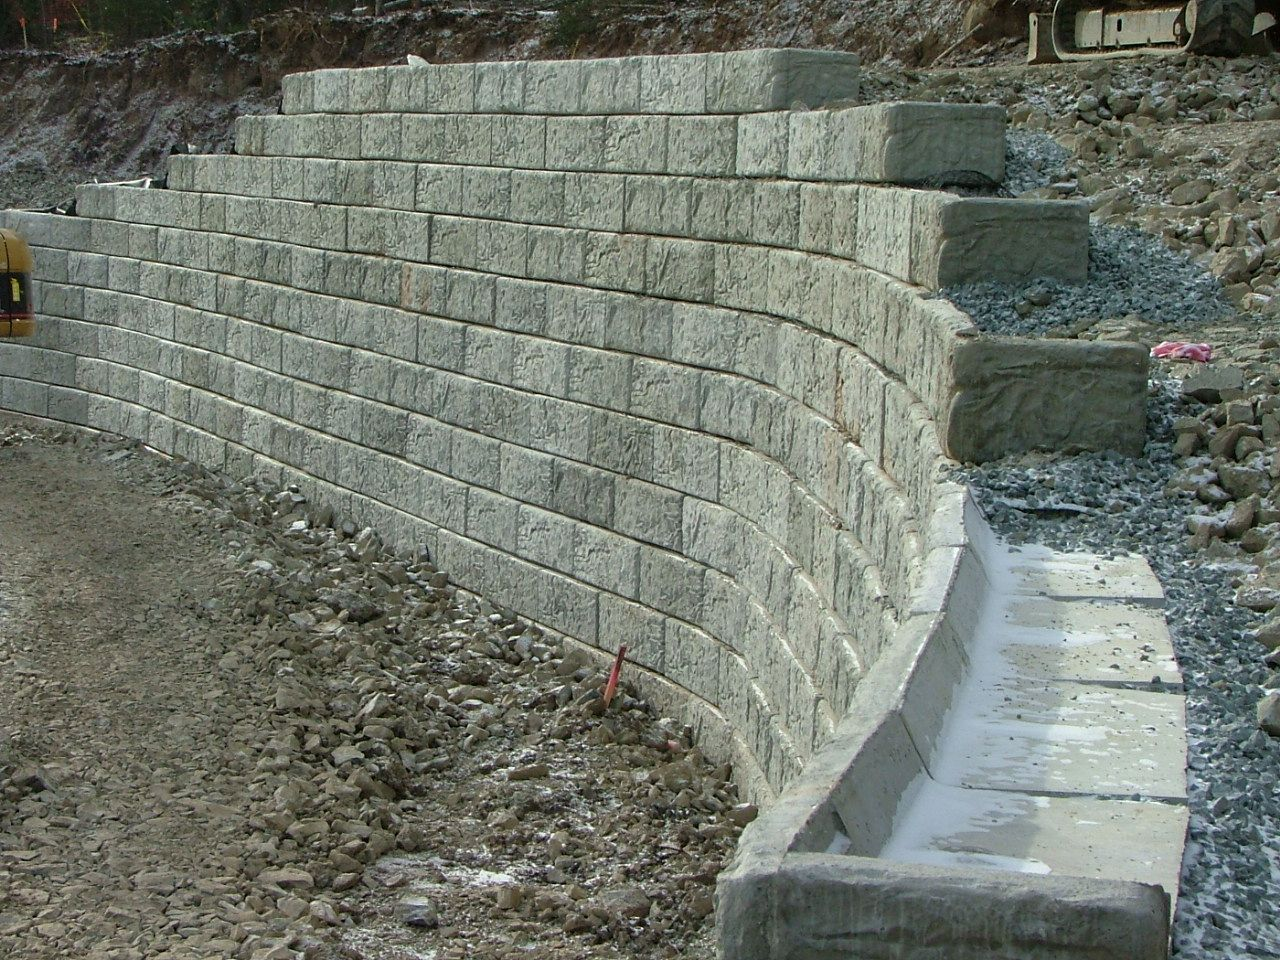 How To Build A Tall Retaining Wall With Blocks Kitchen Ideas In 2020 Landscaping Retaining Walls Building A Retaining Wall Concrete Block Retaining Wall